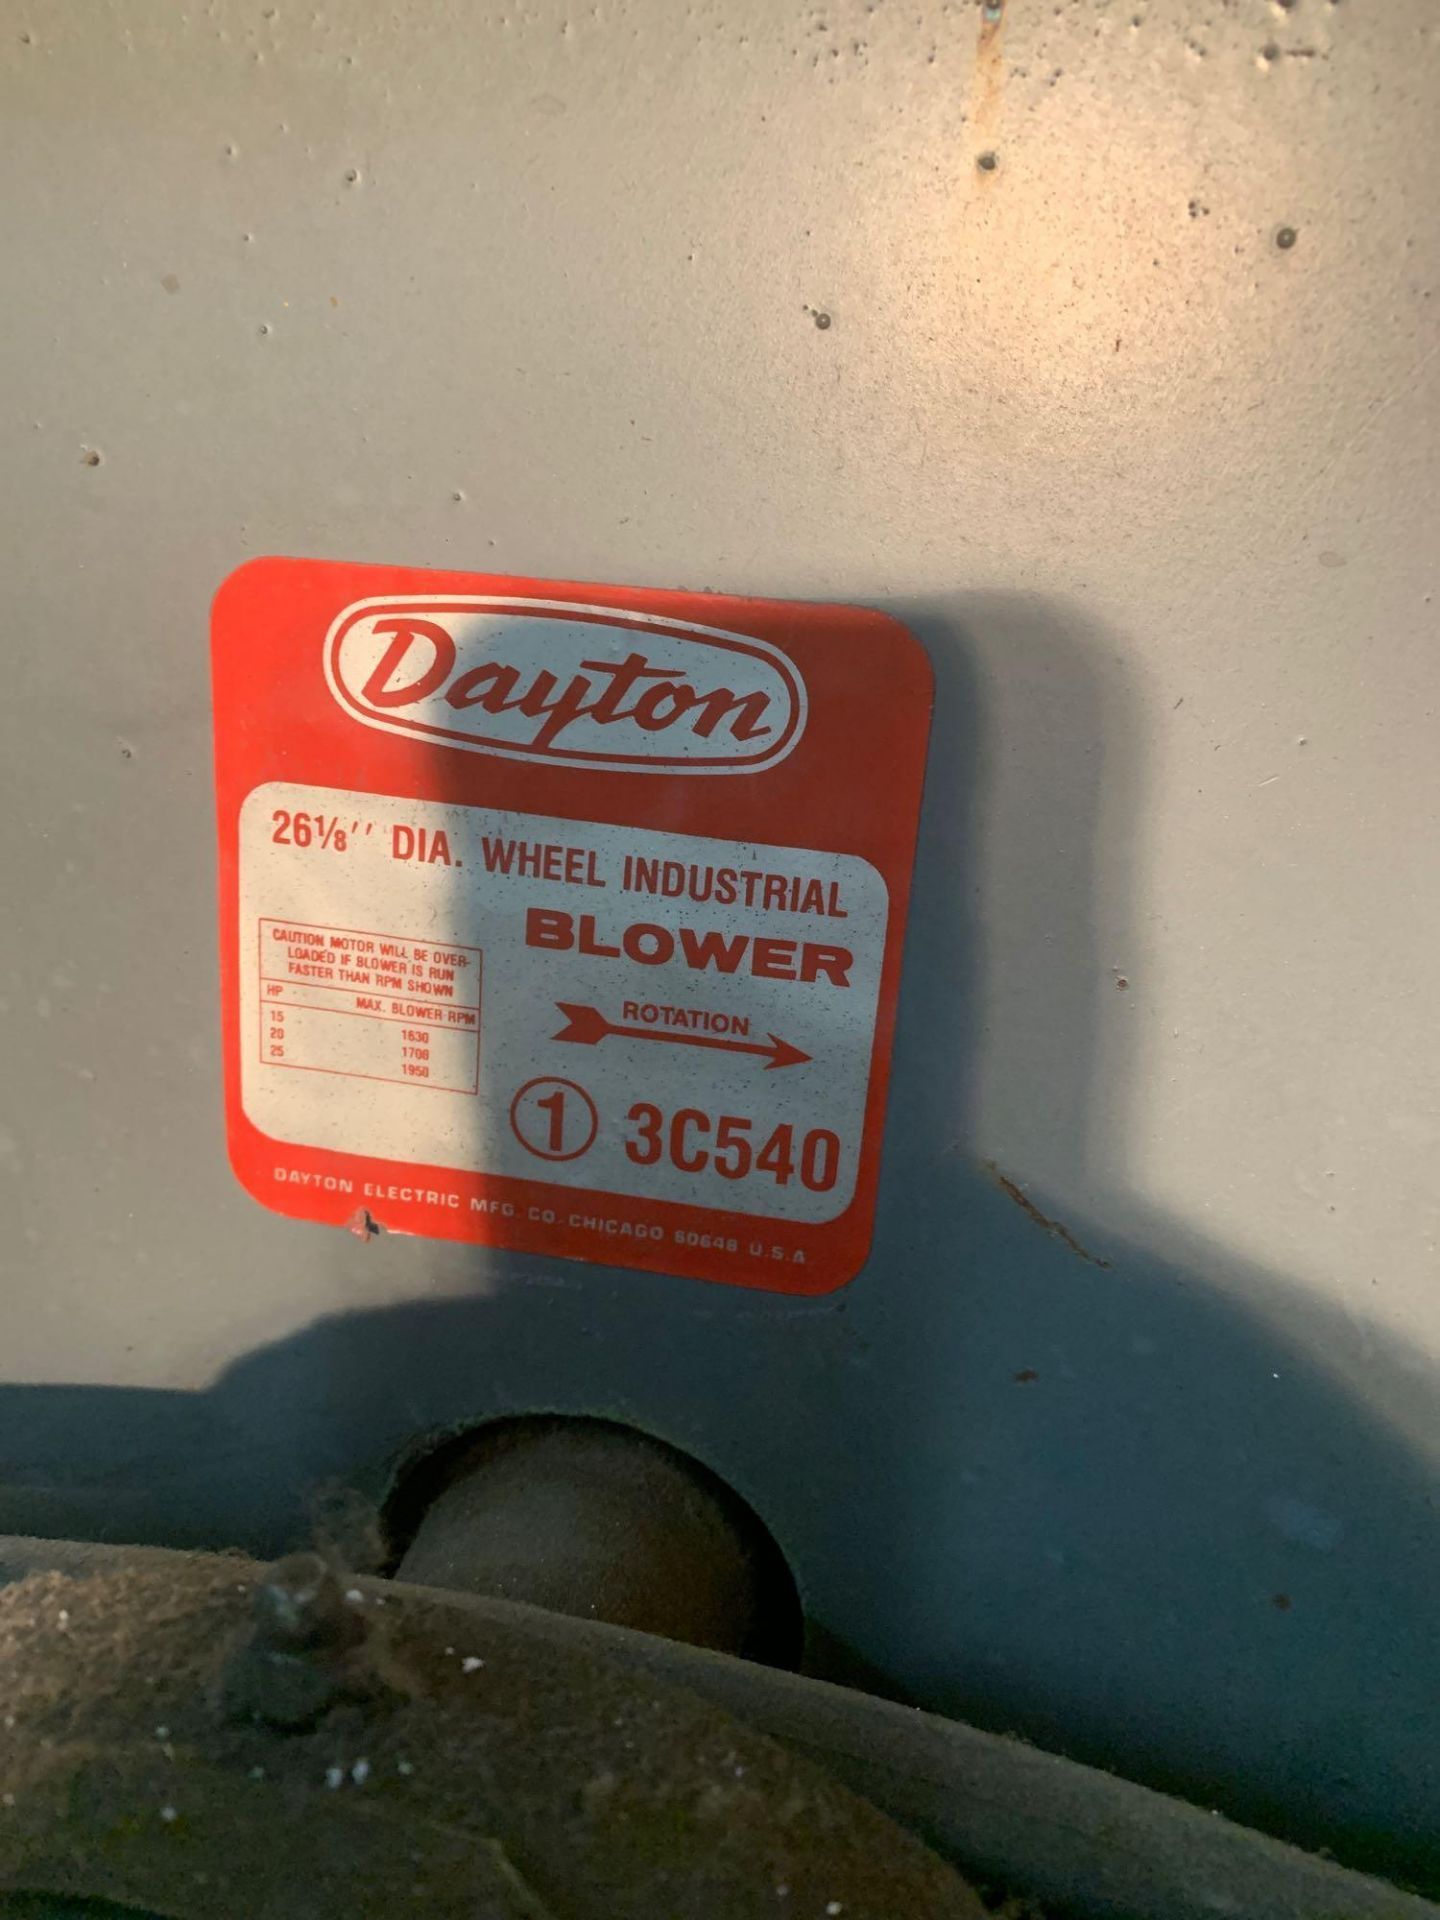 Factory Blower - Image 6 of 6